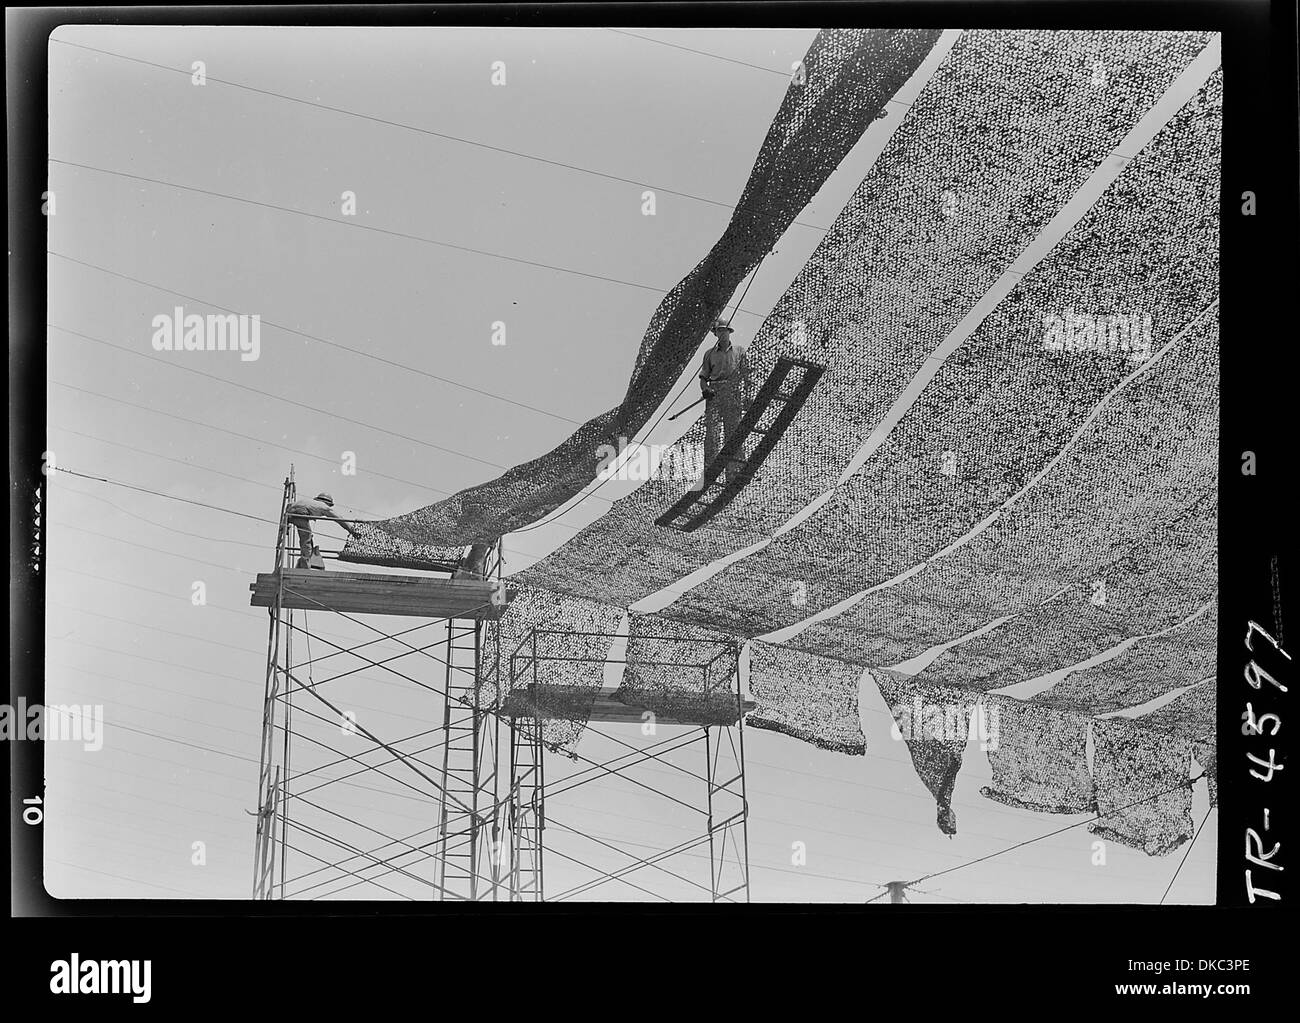 Camouflage netting at Consolidated Vultee aircraft plant, San Diego, Cal. 520979 - Stock Image